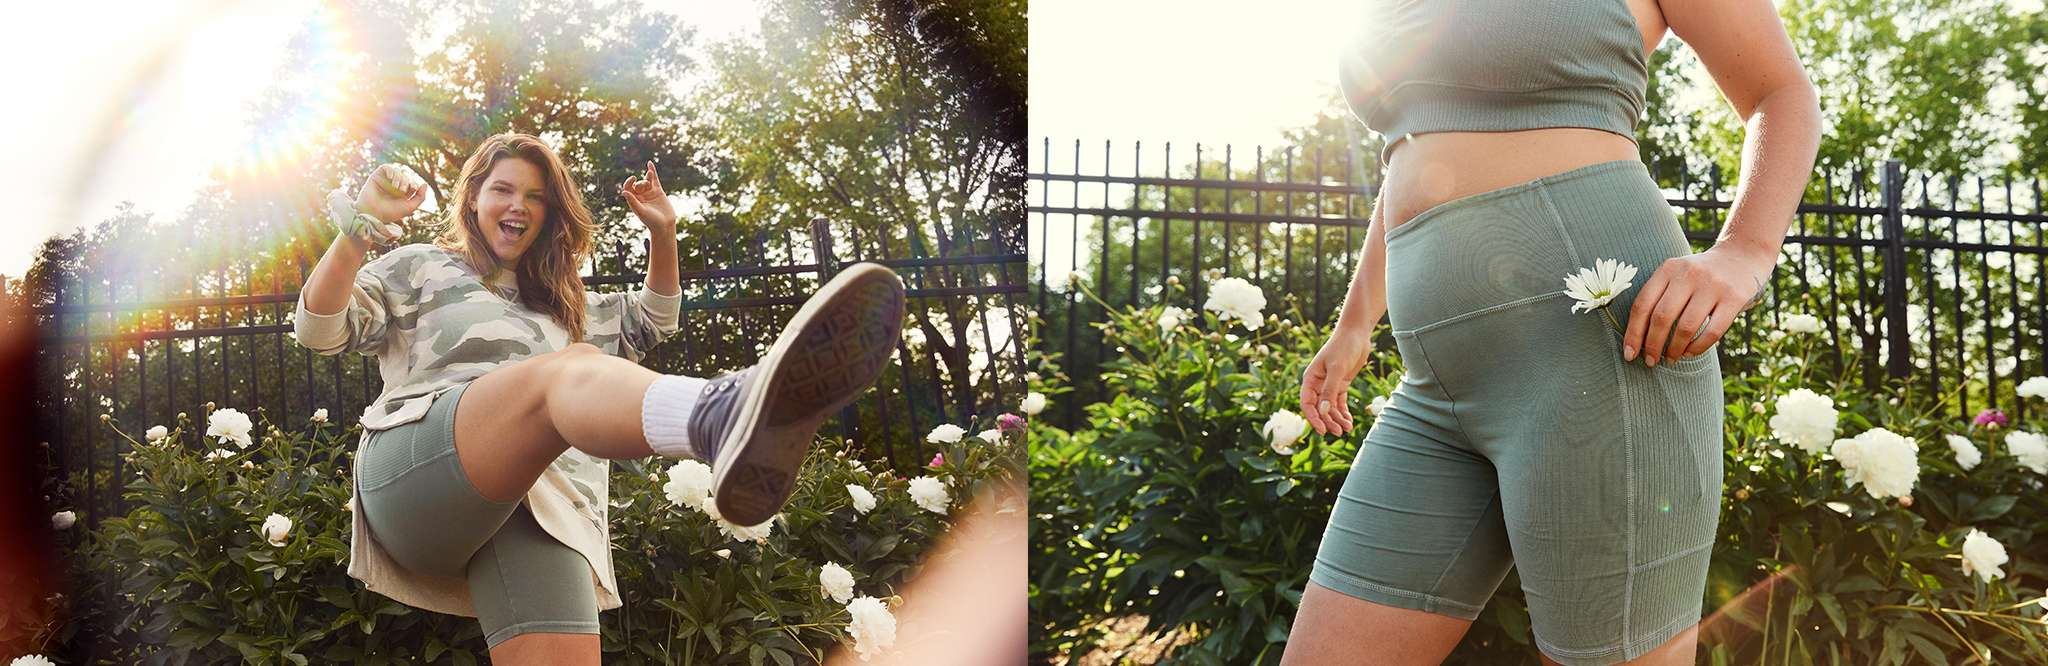 aerie bike shorts Image